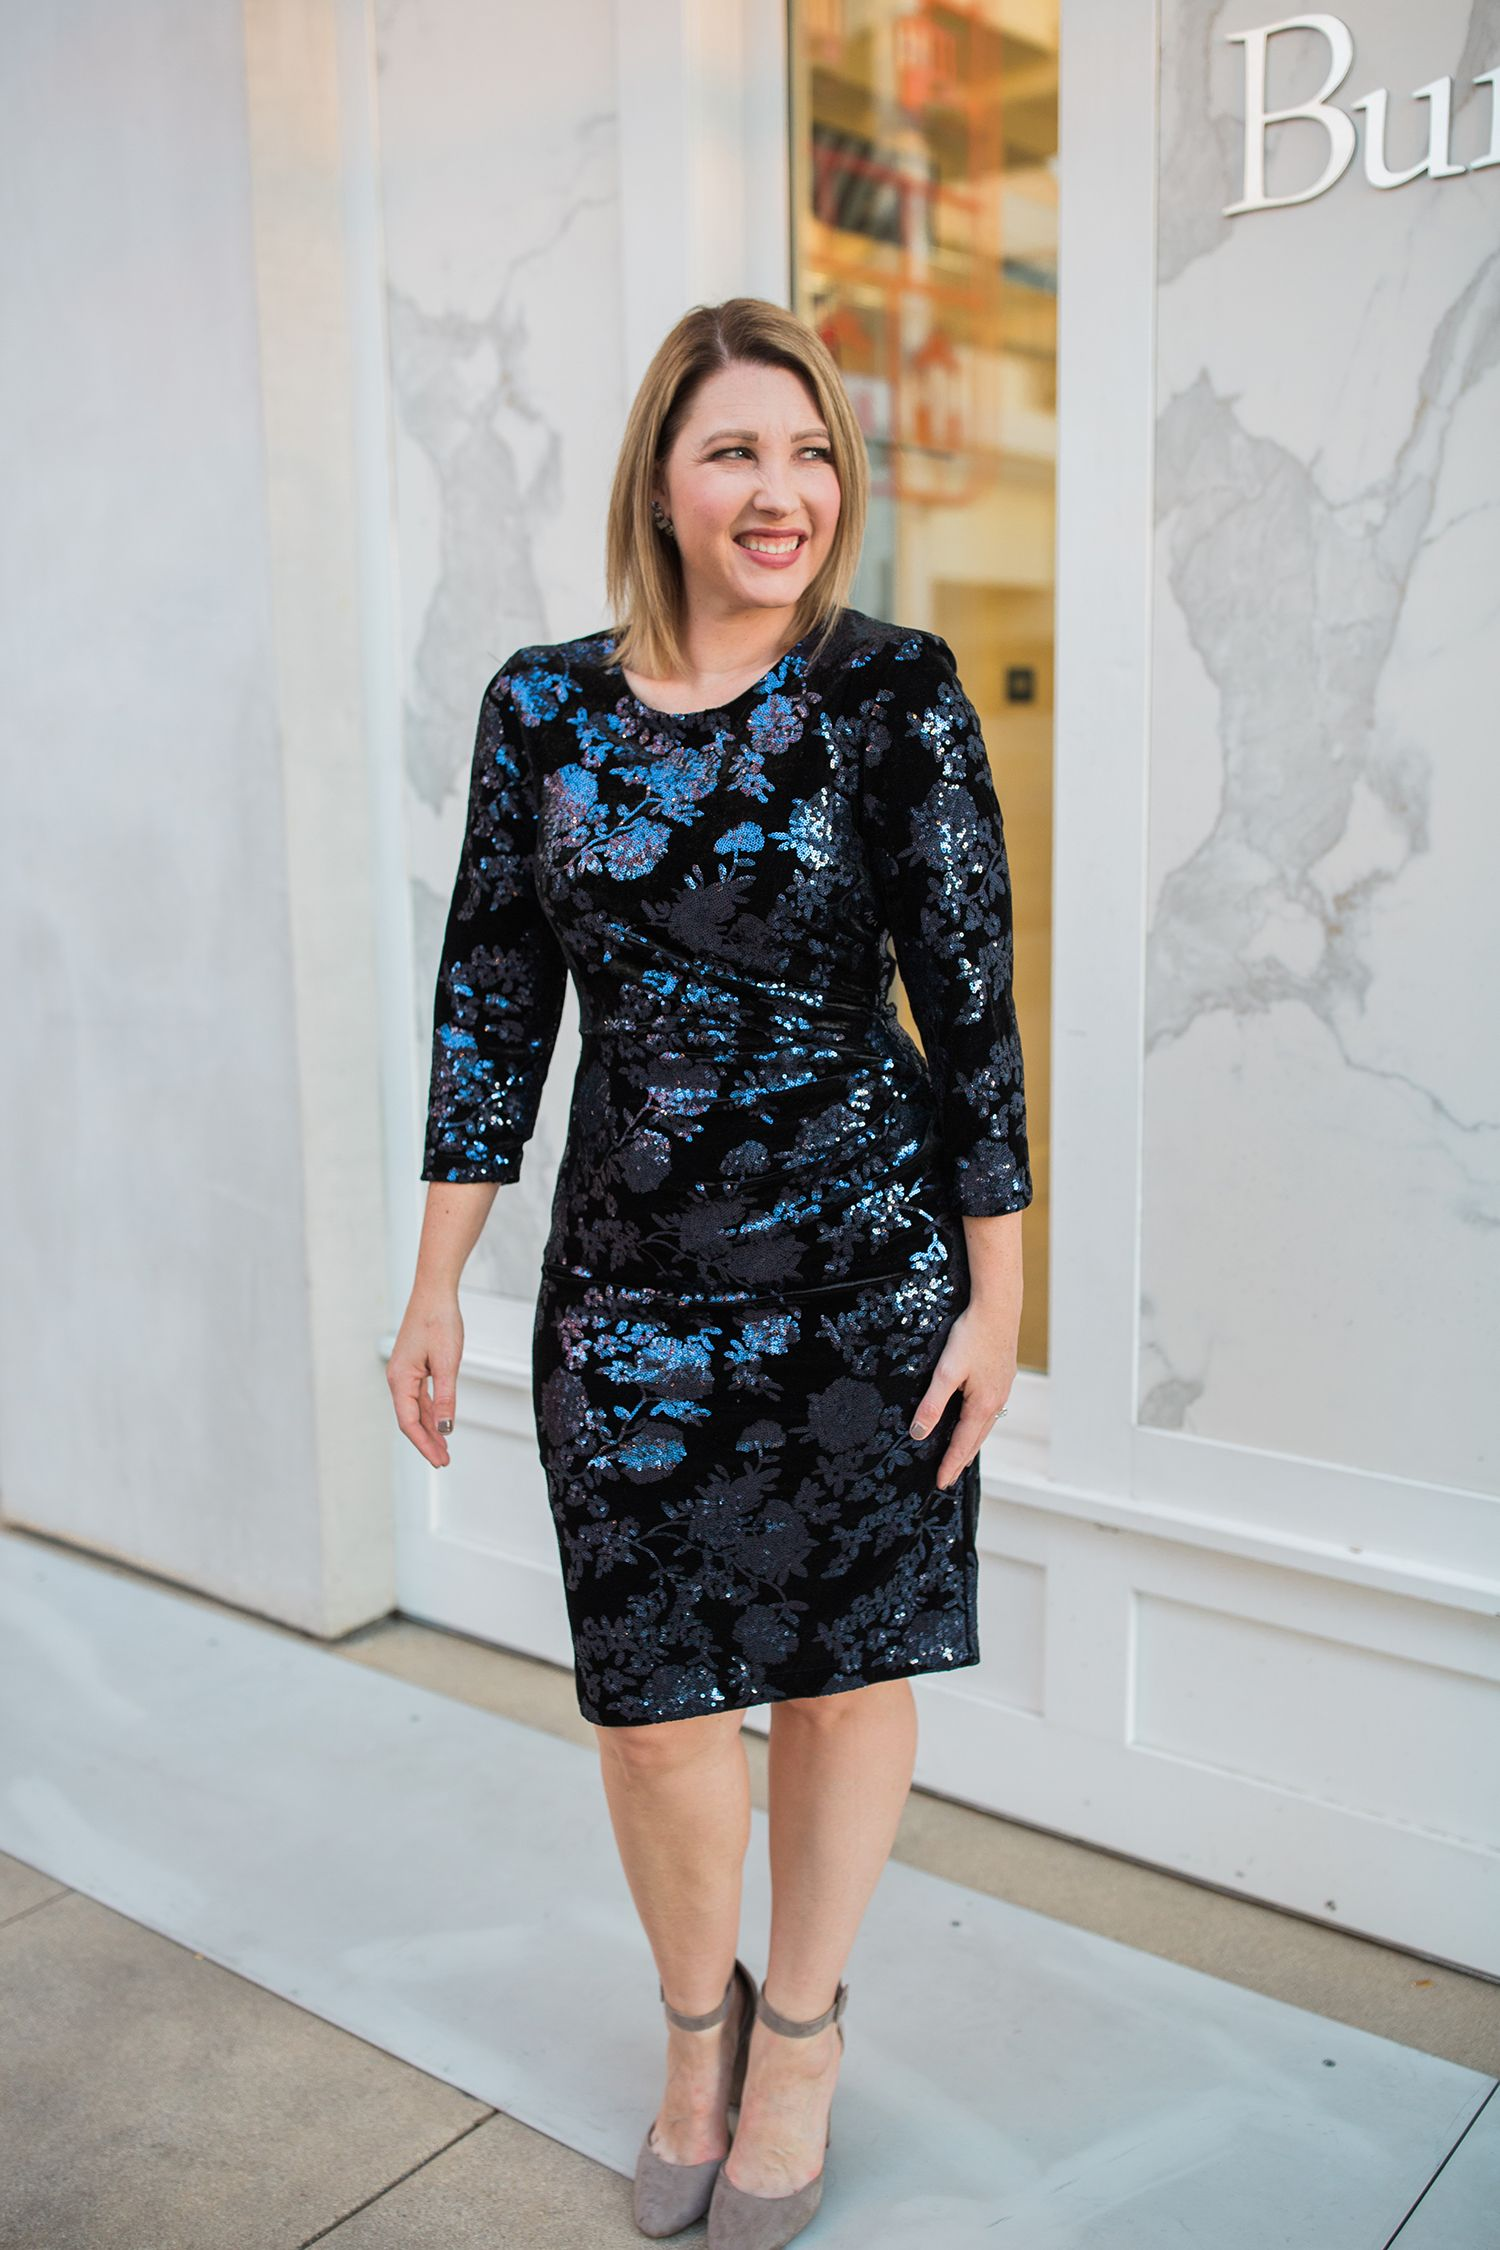 97ffaa23e5e4 On the hunt for HOLIDAY DRESSES? I've rounded up the best holiday dresses  for a pear shape body!